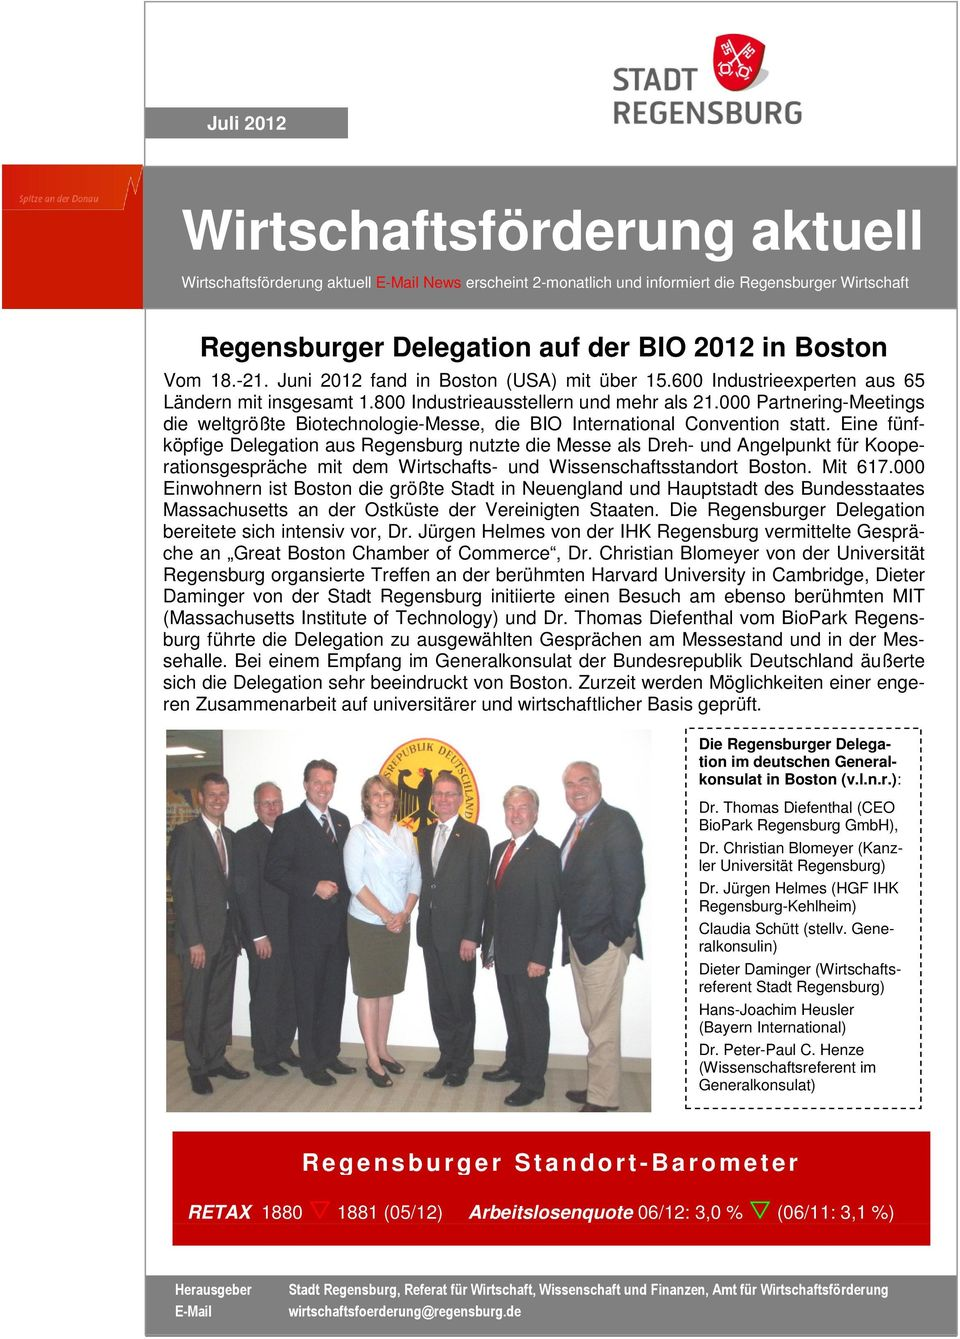 000 Partnering-Meetings die weltgrößte Biotechnologie-Messe, die BIO International Convention statt.